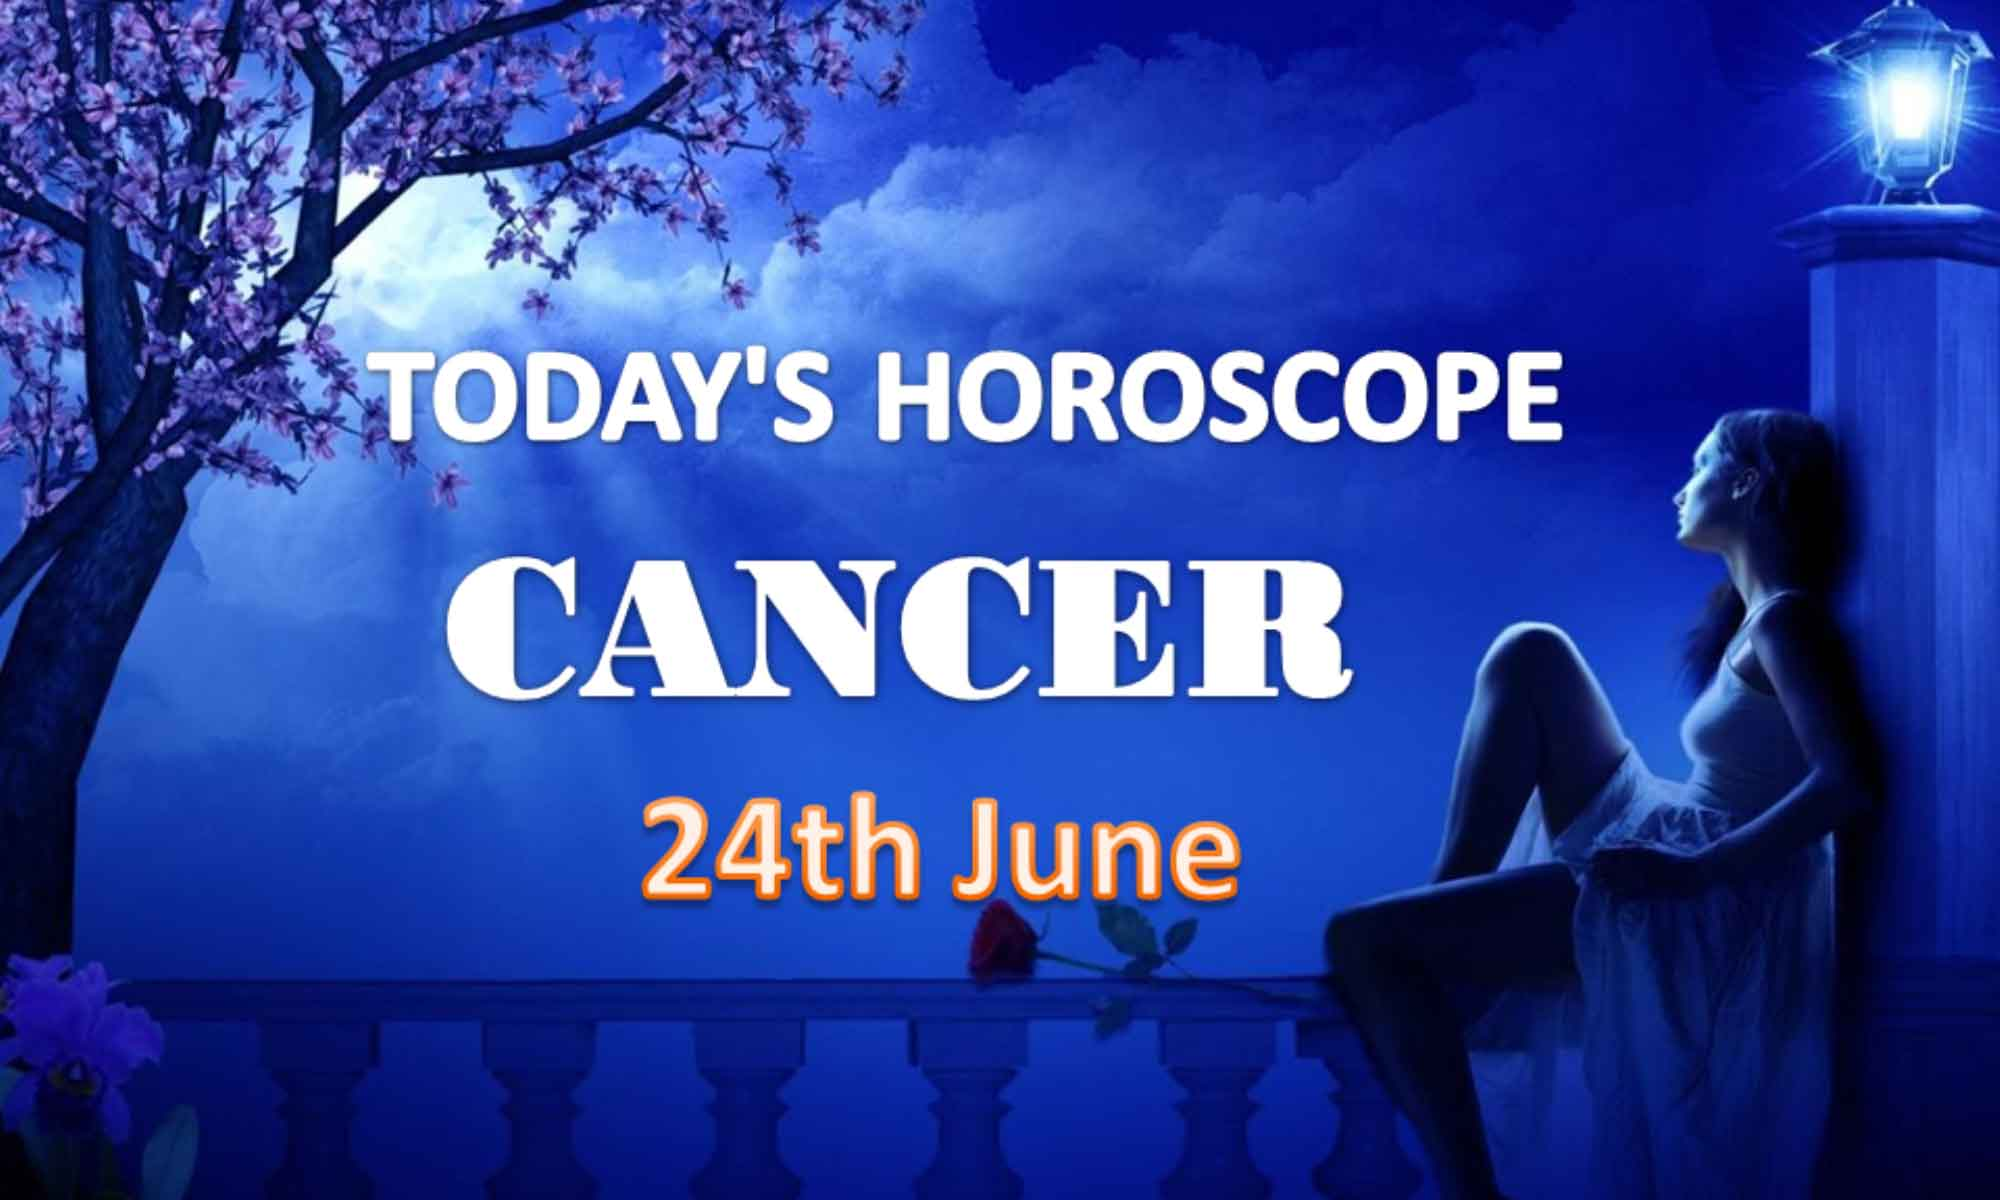 cancer daily horoscope for today thursday june 24th 2021